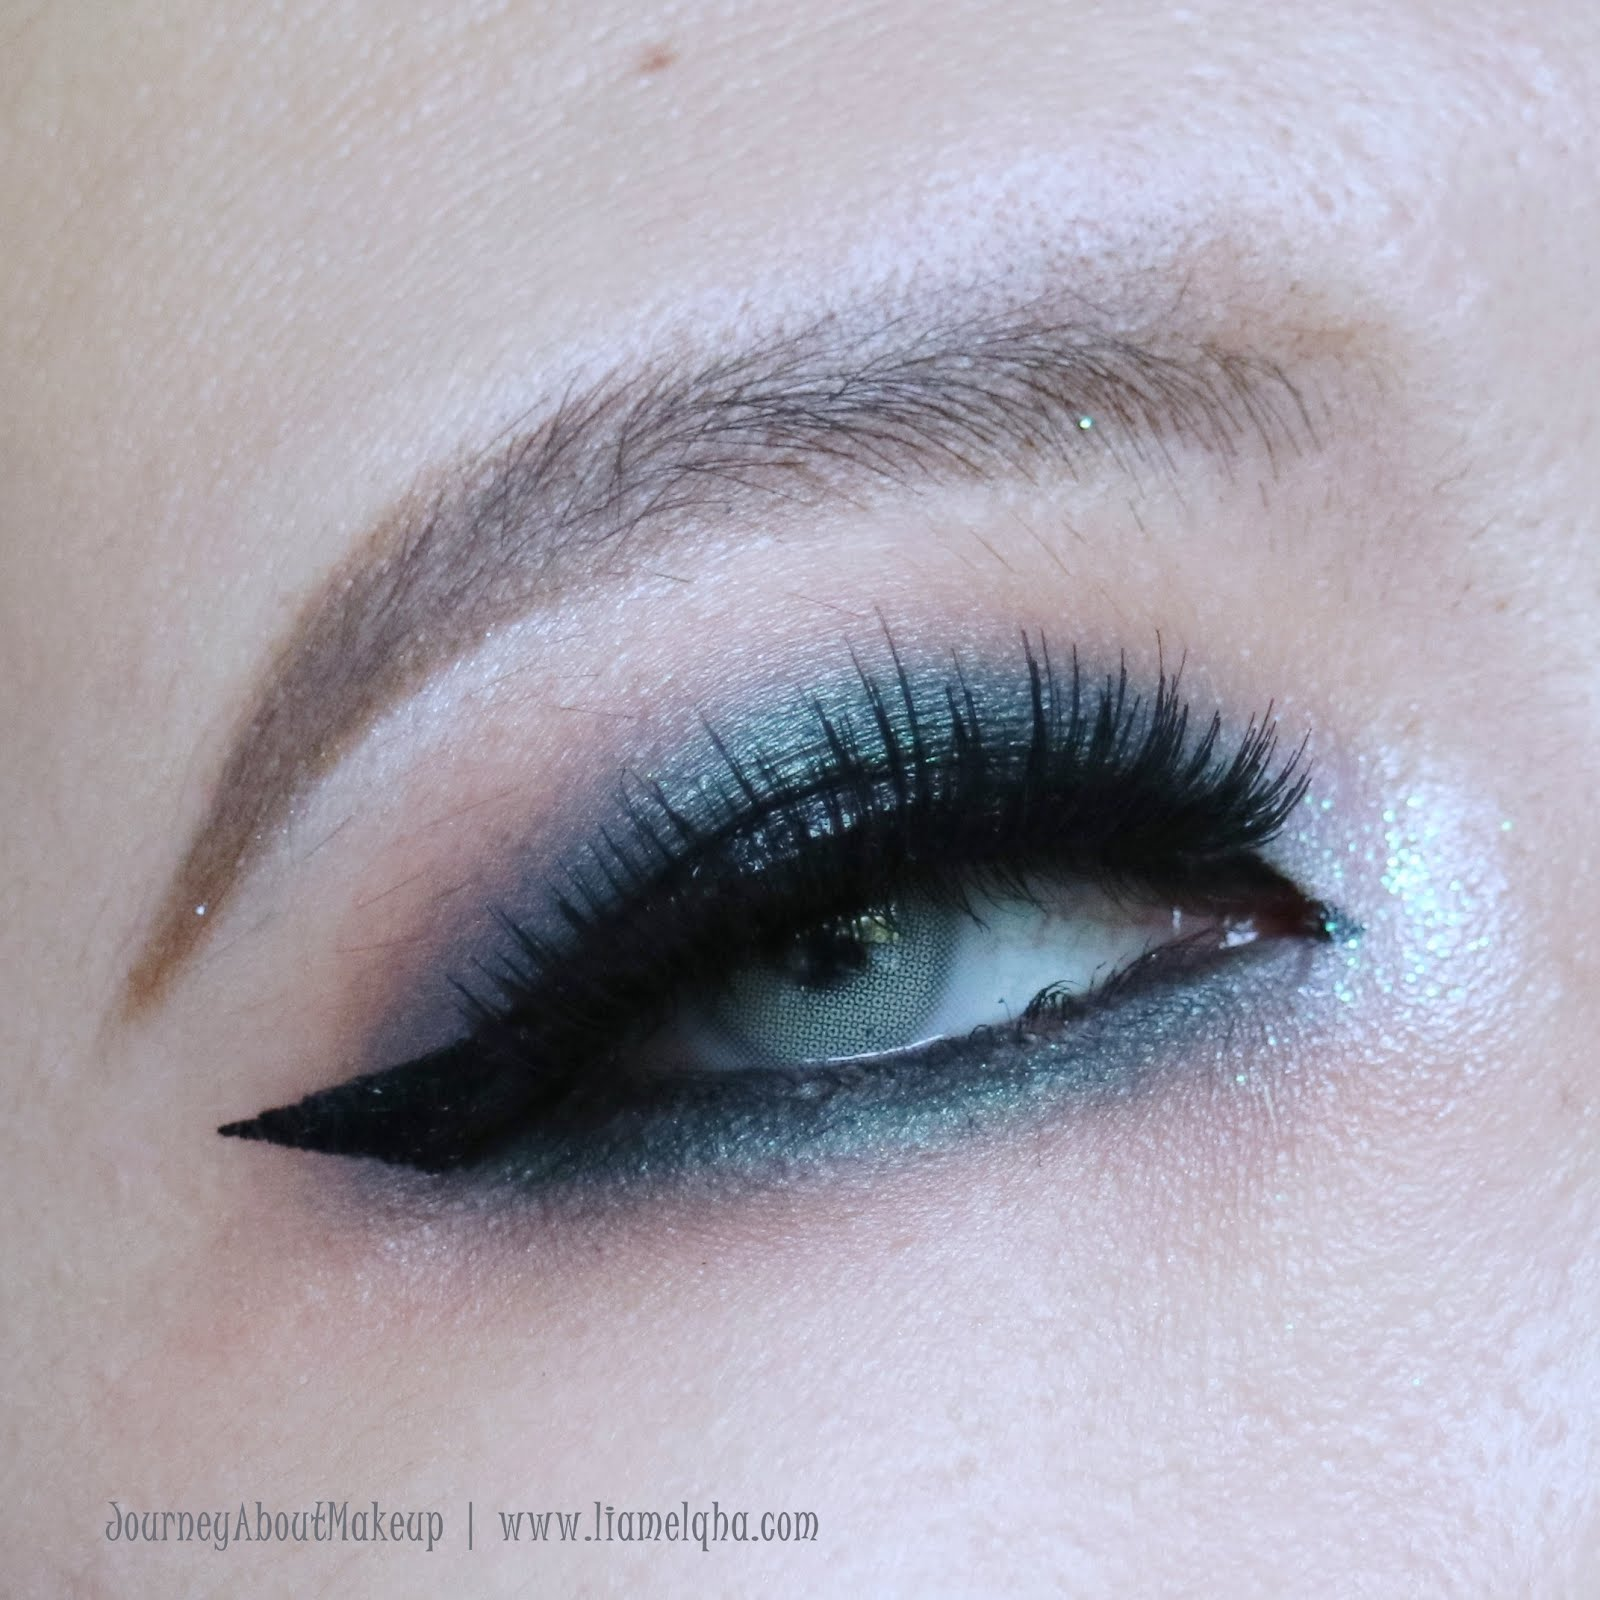 Tutorial: Deep Blue Smokey Eyes for Monolid || Liamelqha